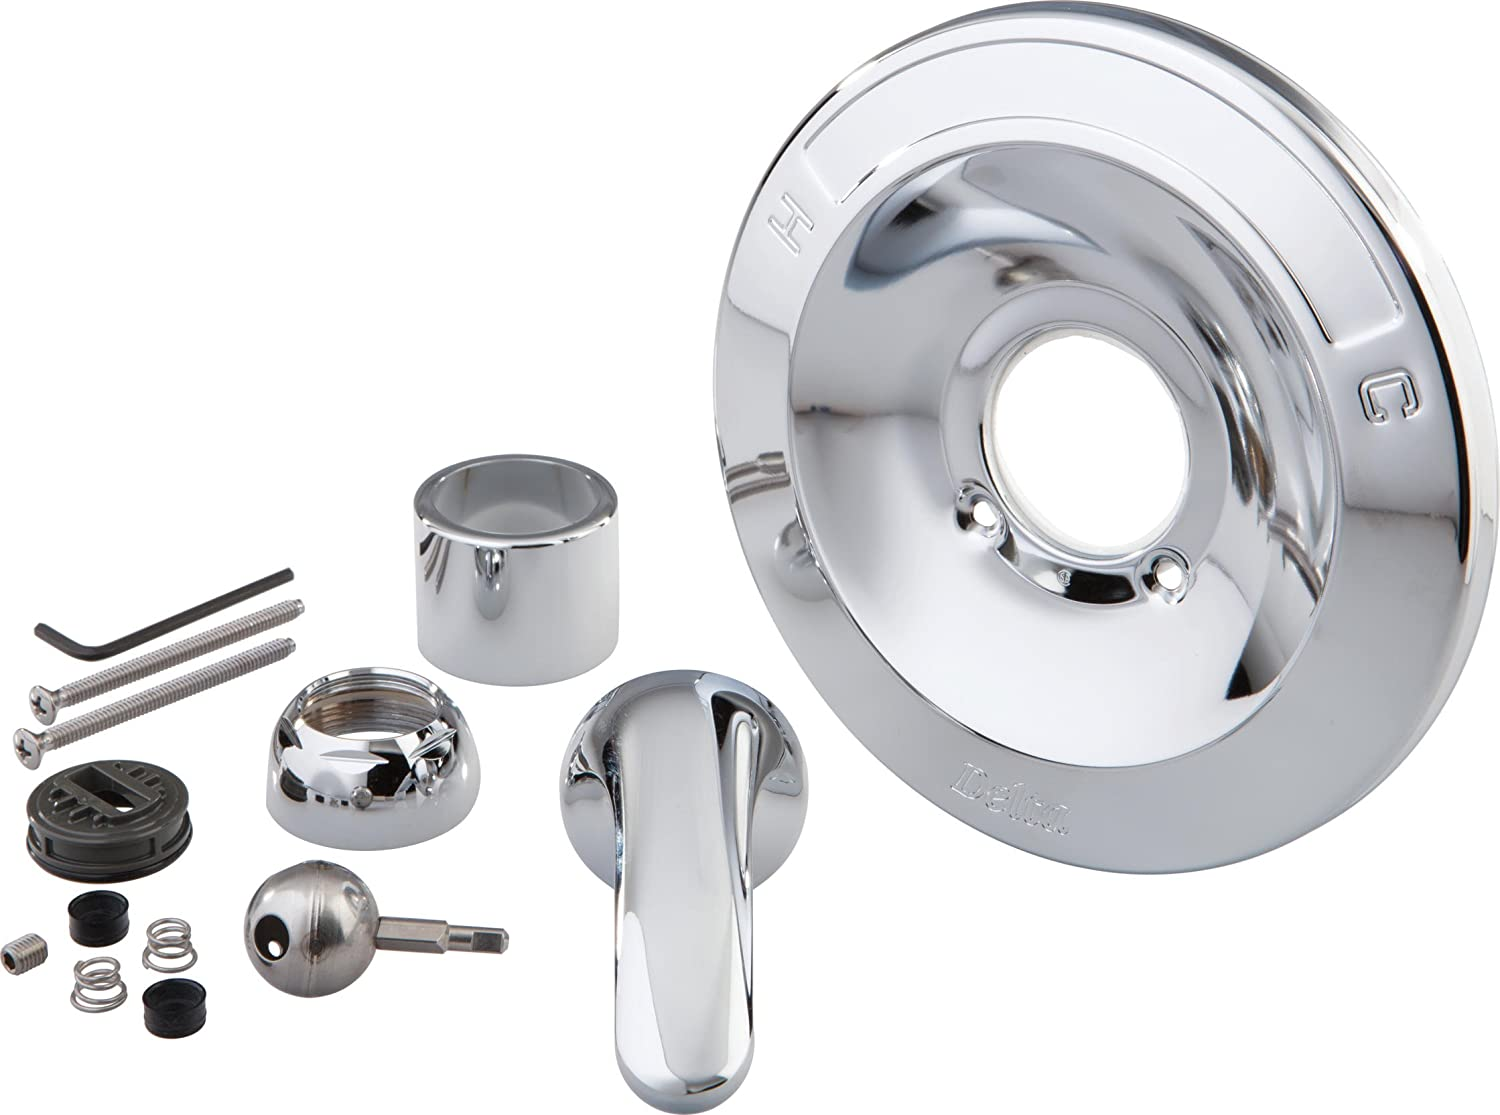 Delta RP54870 Renovation Kit - 600 Series Tub and Shower, Chrome ...